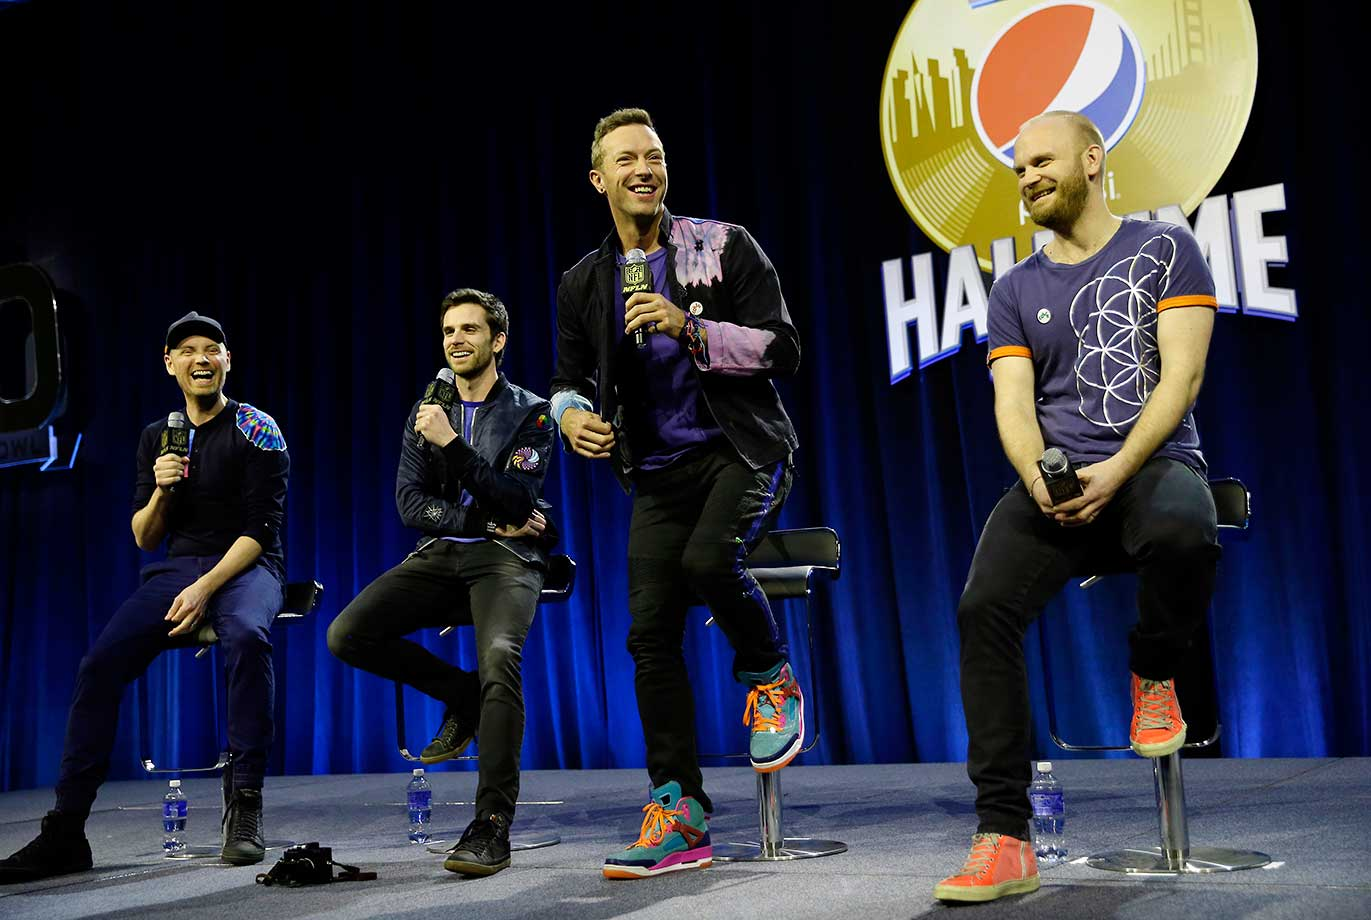 Chris Martin of Coldplay speaks during a halftime news conference on Thursday for Super Bowl 50.